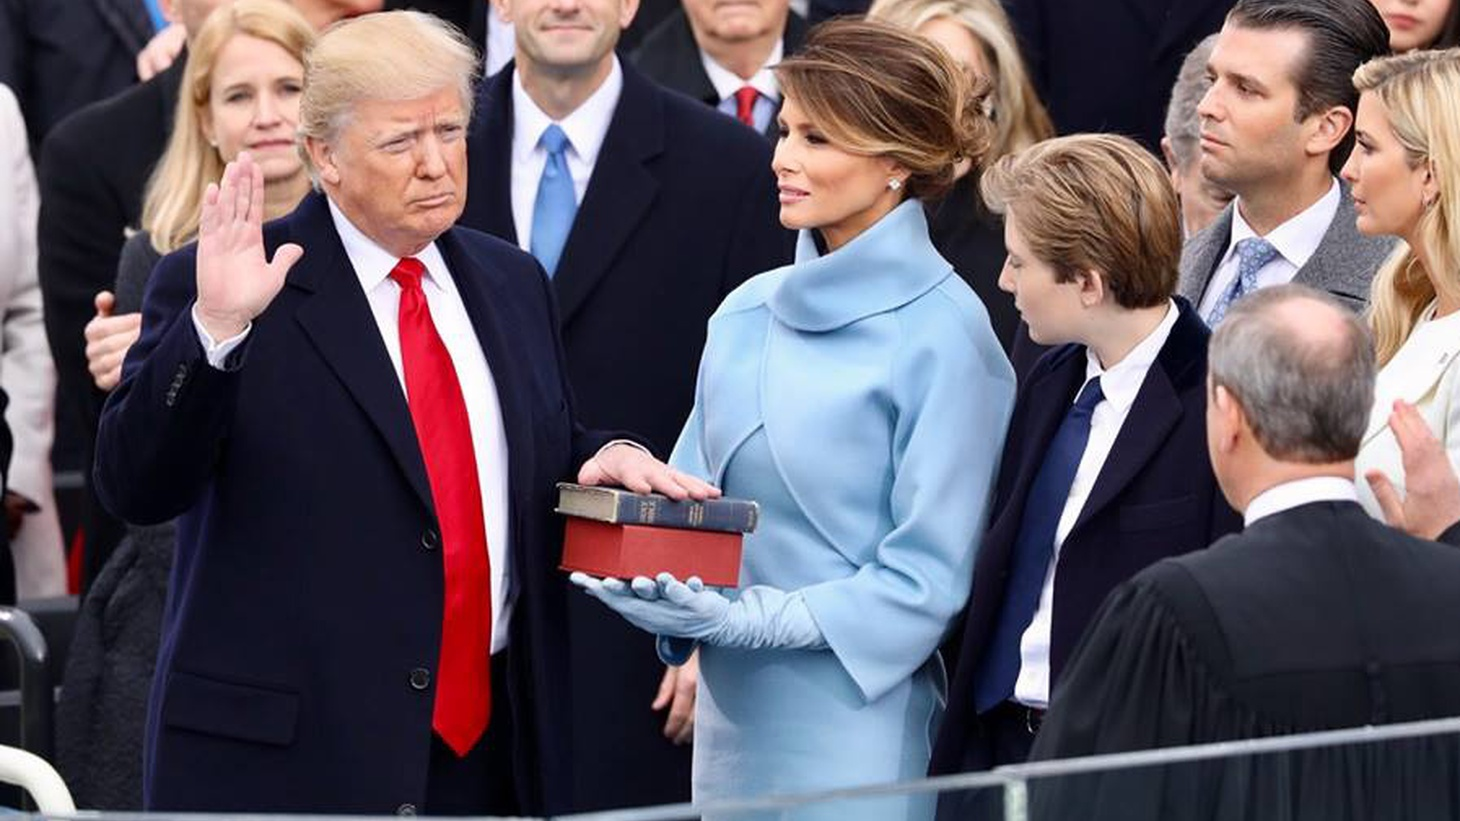 This morning, Donald J. Trump became the 45th President of the United States. His inaugural address began with ringing repetitions of promises familiar from last year's speeches and rallies.